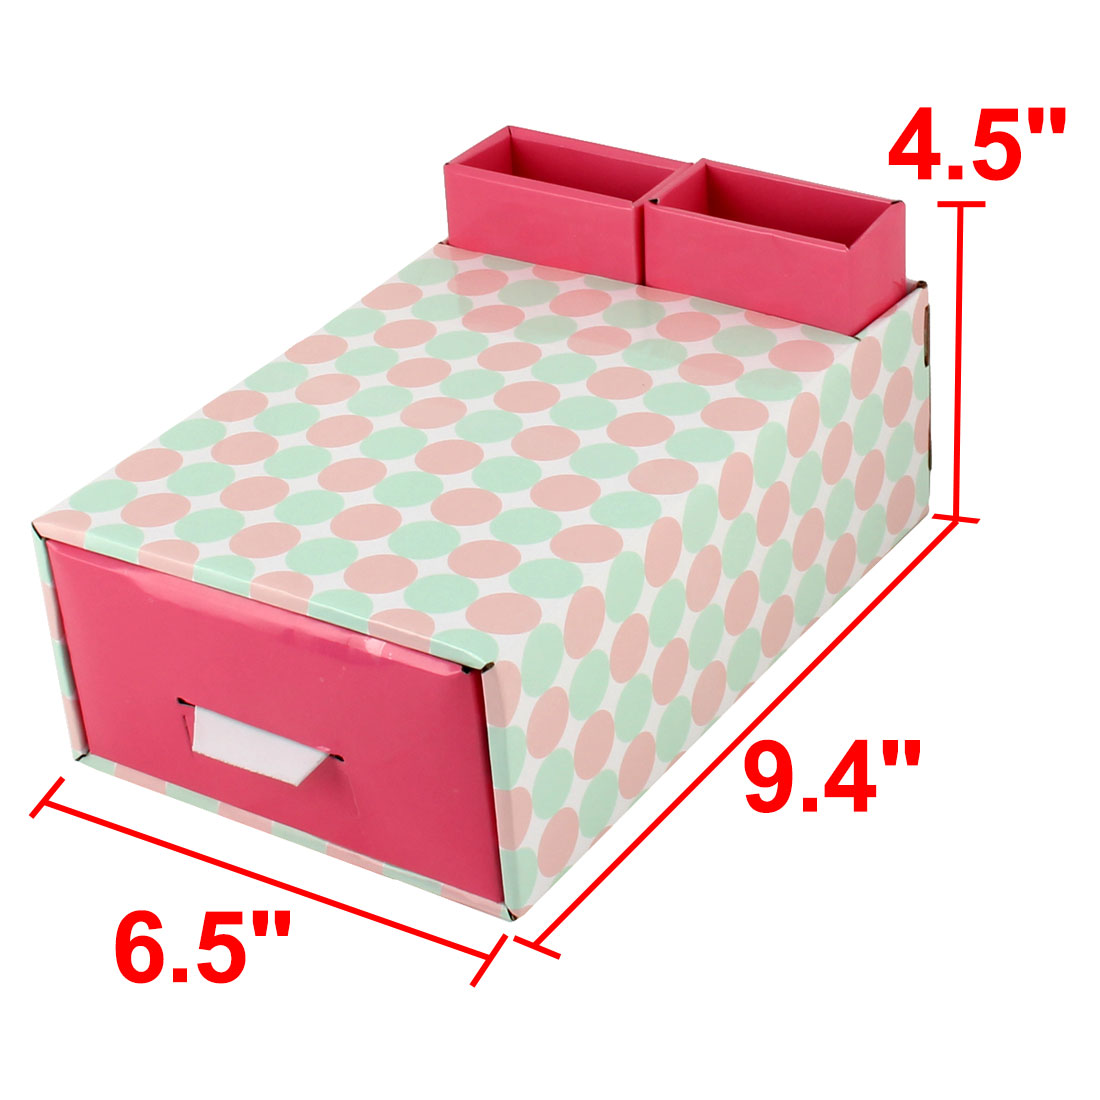 Unique Bargains Home Paper Dot Pattern DIY Foldable Book Holder Container Storage Box Case Red - image 3 of 6